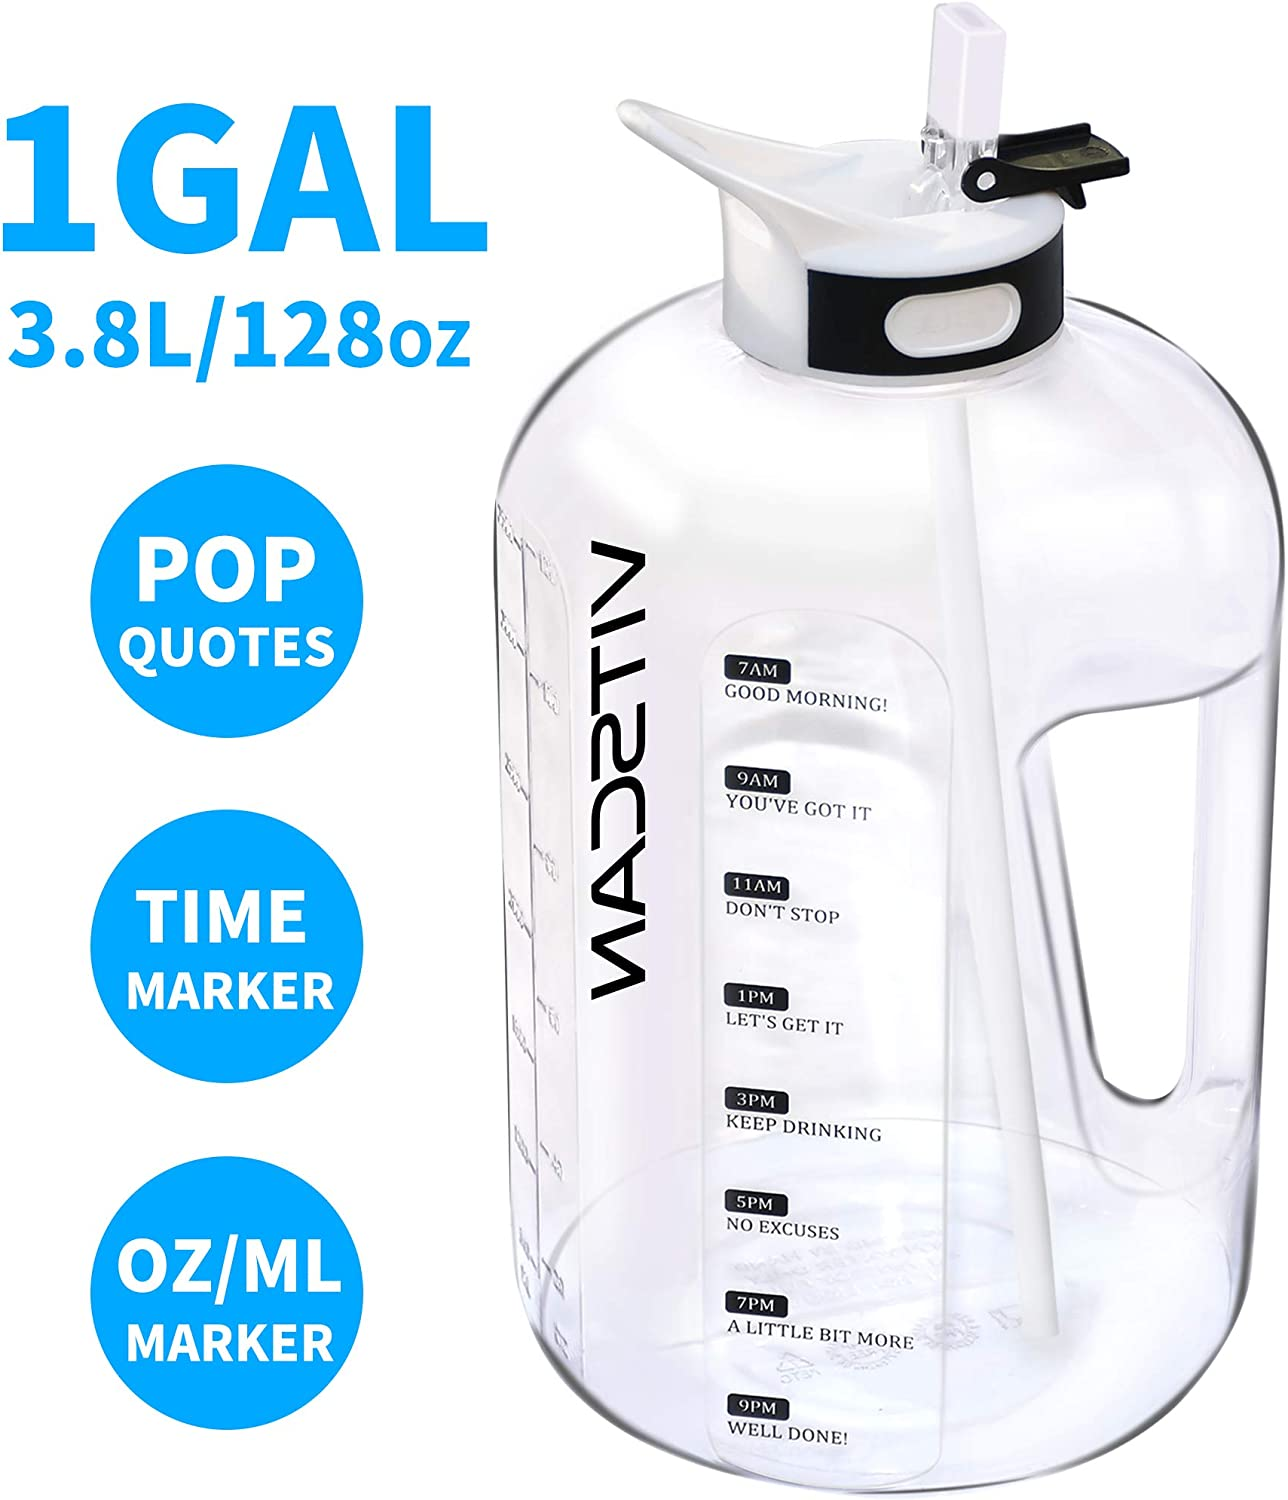 128OZ/1 Gallon Water Bottle with Straw Motivational Water Bottle with Time Marker, Large Water Bottle 128 Oz Water Bottle, Big Water Jug for Sports Water Bottles, Two Handles BPA Free